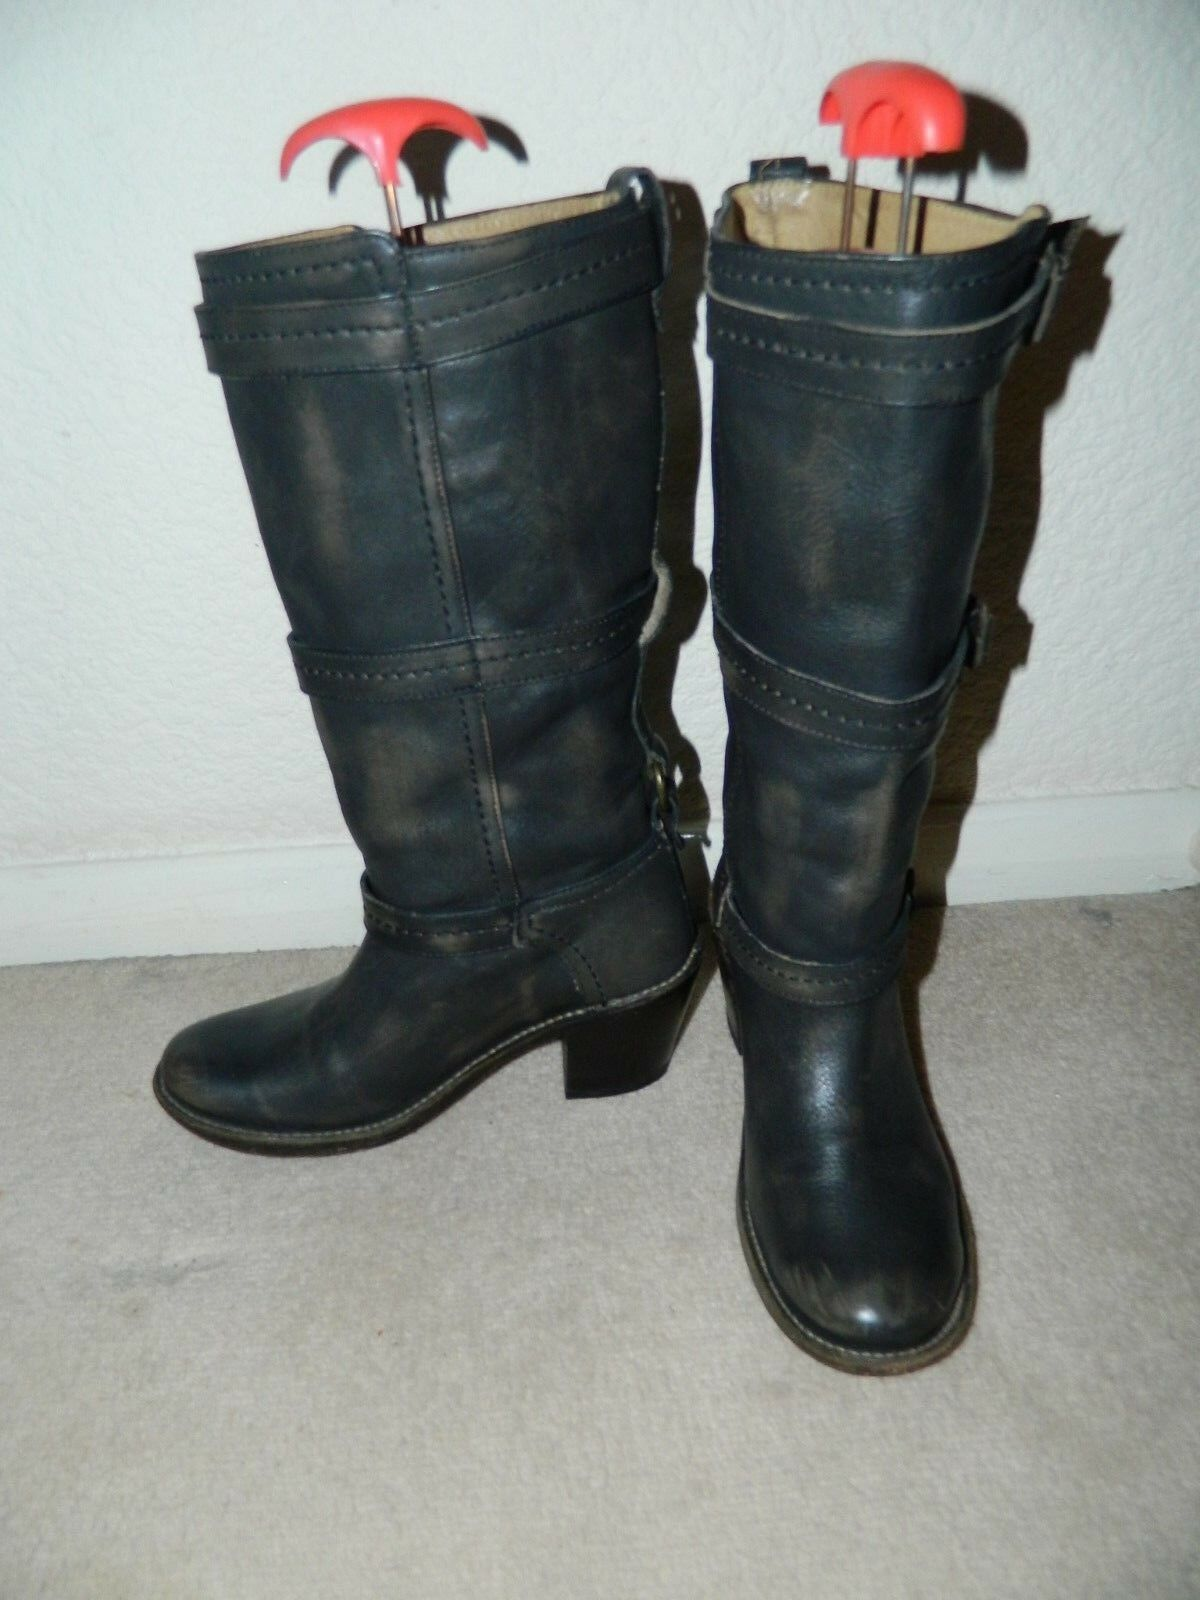 FRYE Slate Grey boots UK 5.5 USA 7.5 pull on Distressed leather three straps